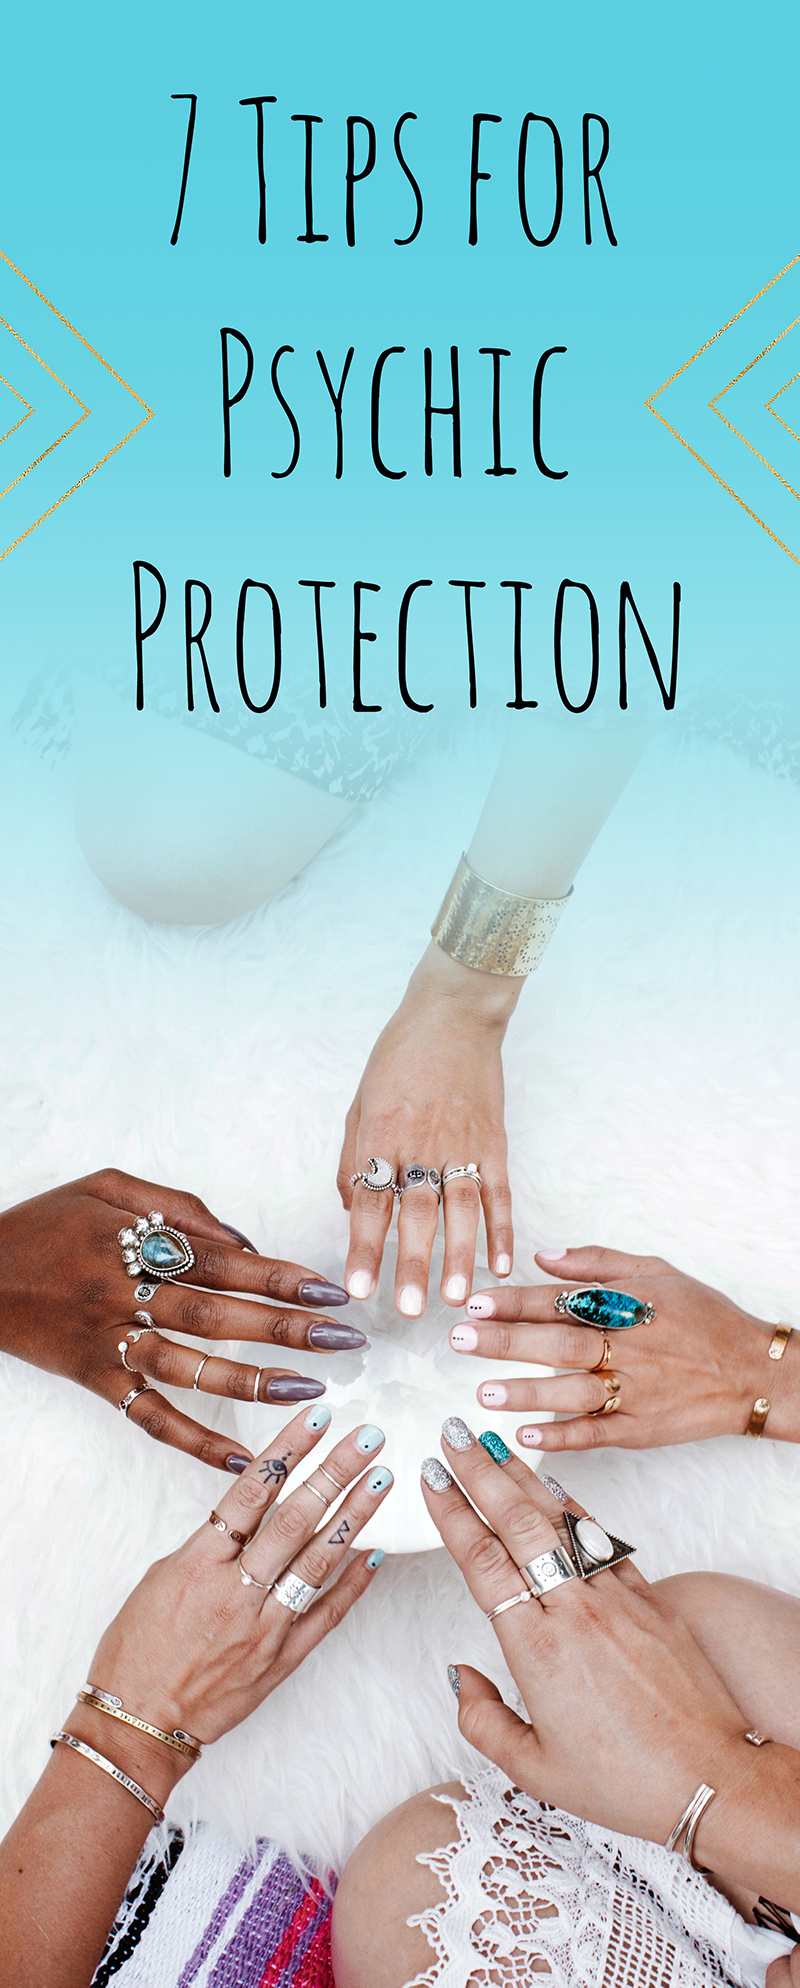 Pic3-7-tips-for-psychic-protection